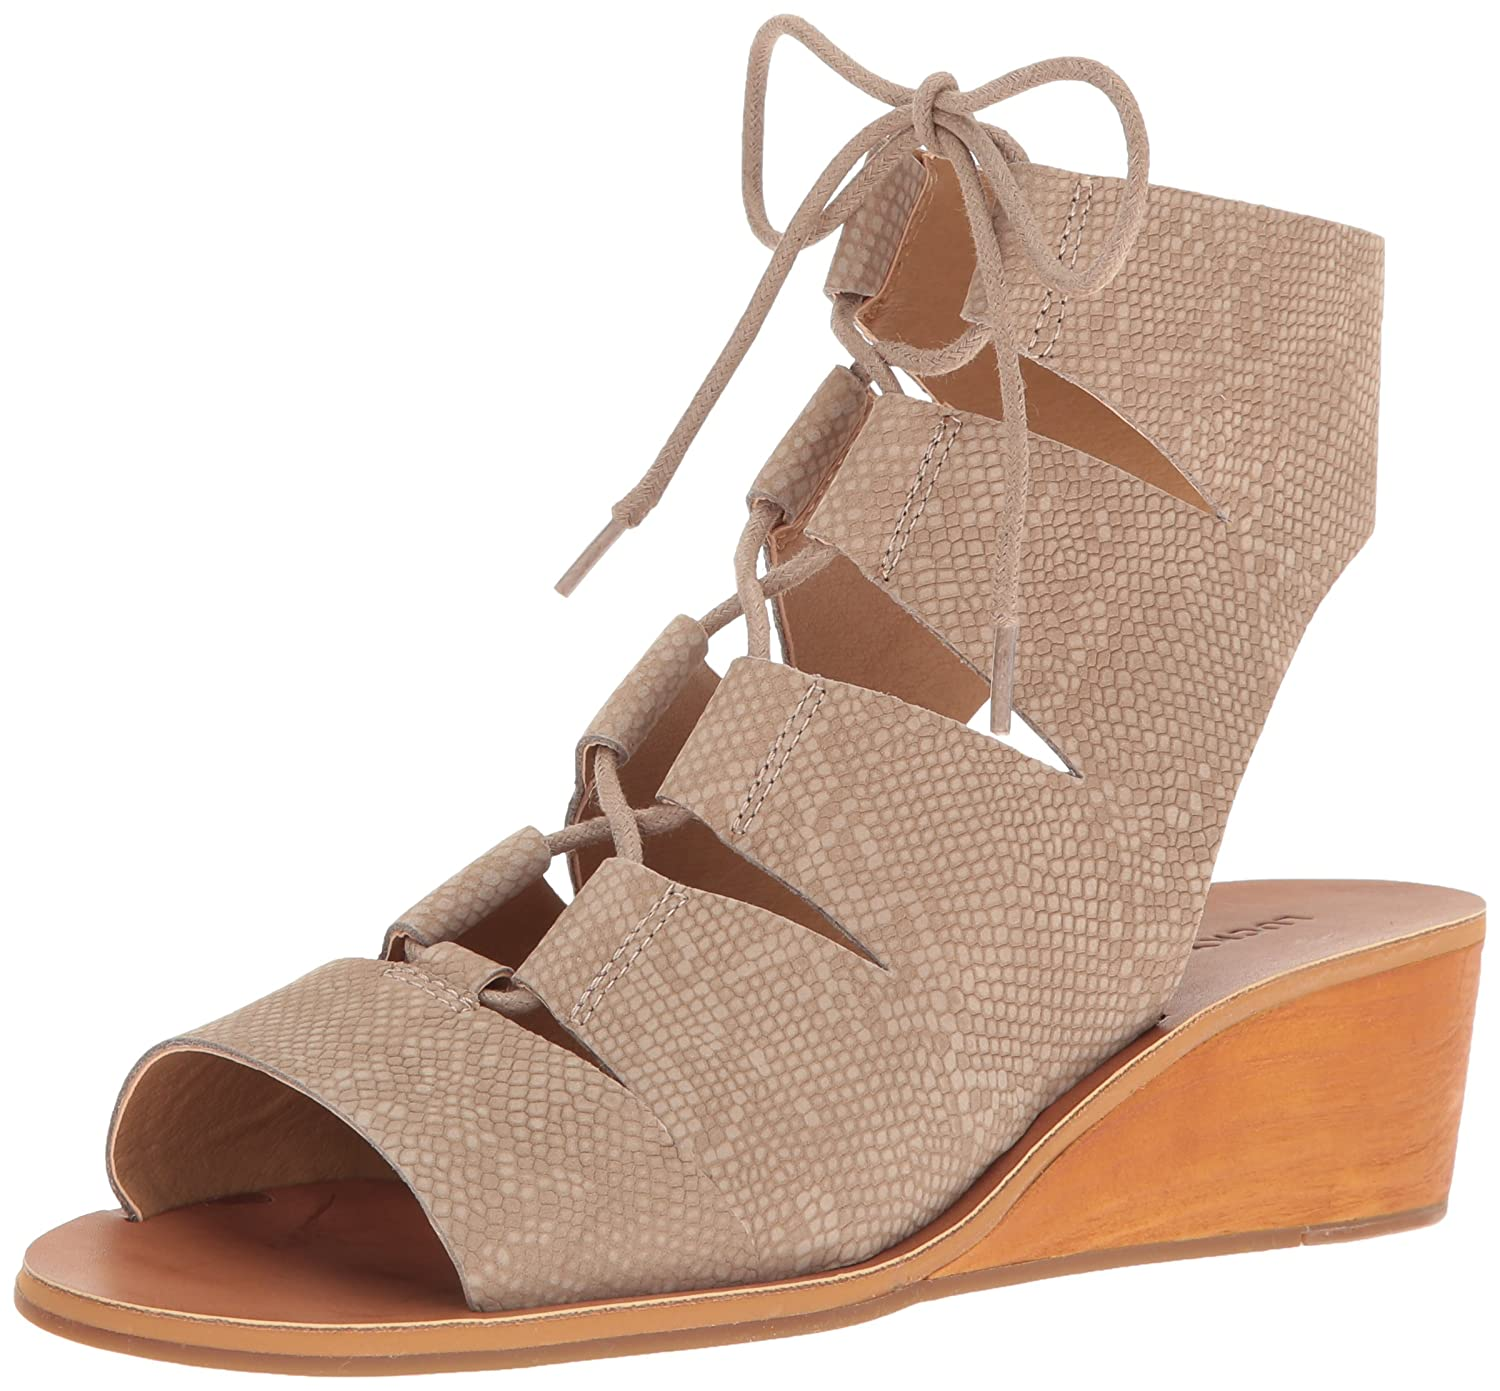 Lucky US|Feather Brand Women's Gizi Sandal B01N00Y305 9 M US|Feather Lucky Grey 0fbac1